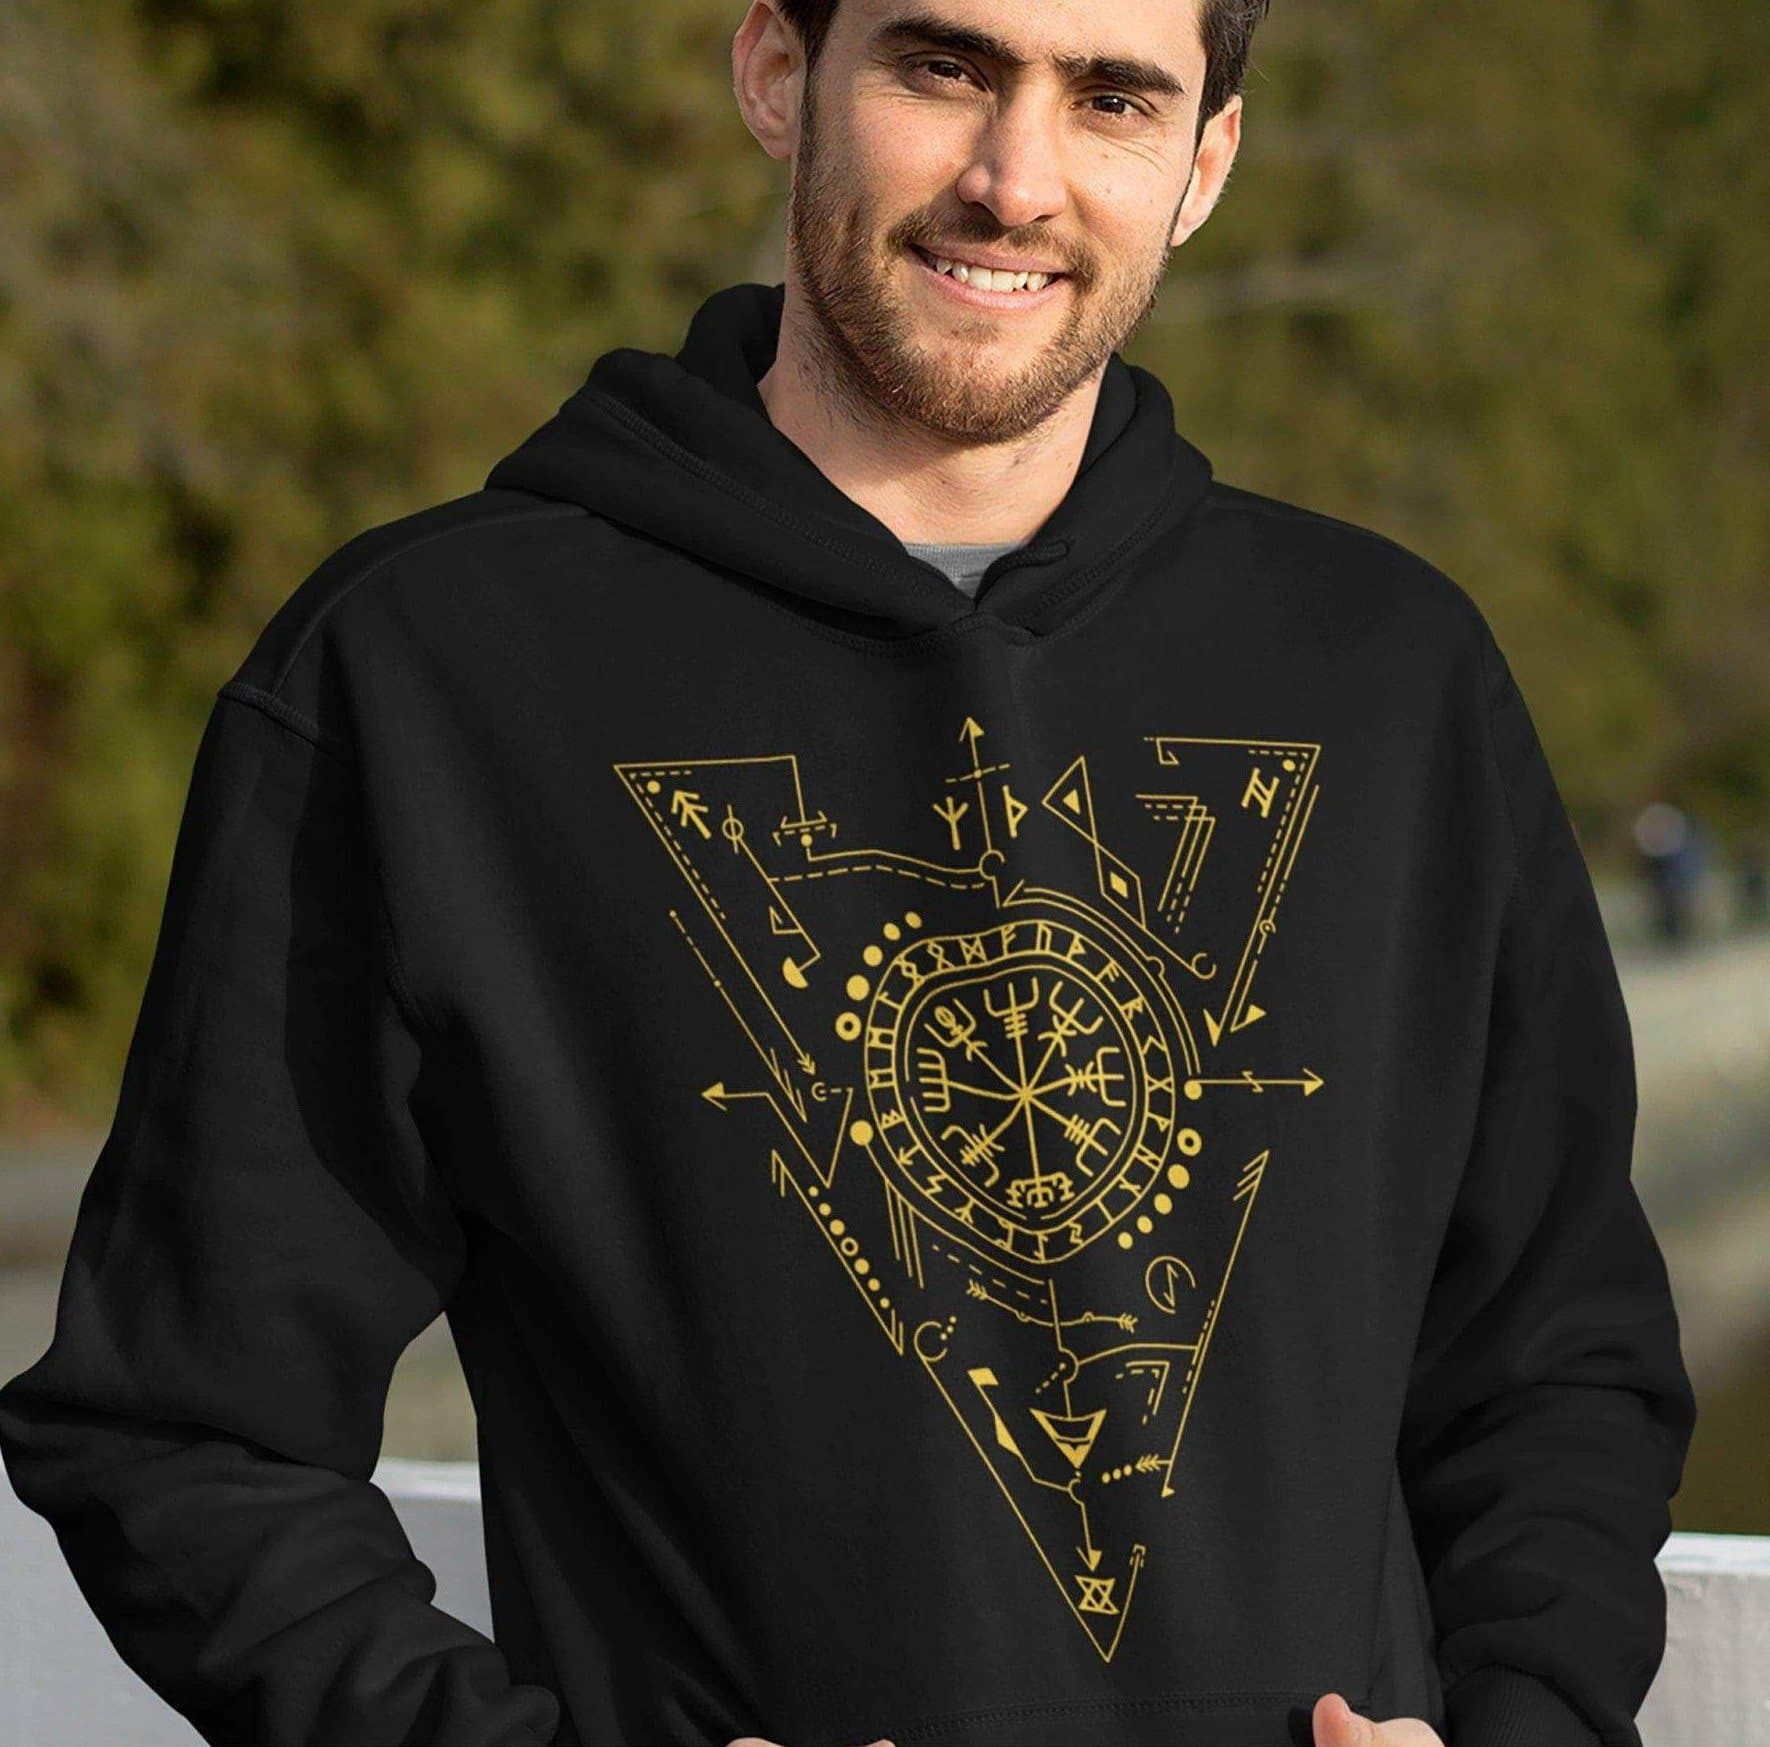 Hoodie Vikings Vegvisir - The Viking Compass Unisex Hoodie Ancient Treasures Ancientreasures Viking Odin Thor Mjolnir Celtic Ancient Egypt Norse Norse Mythology